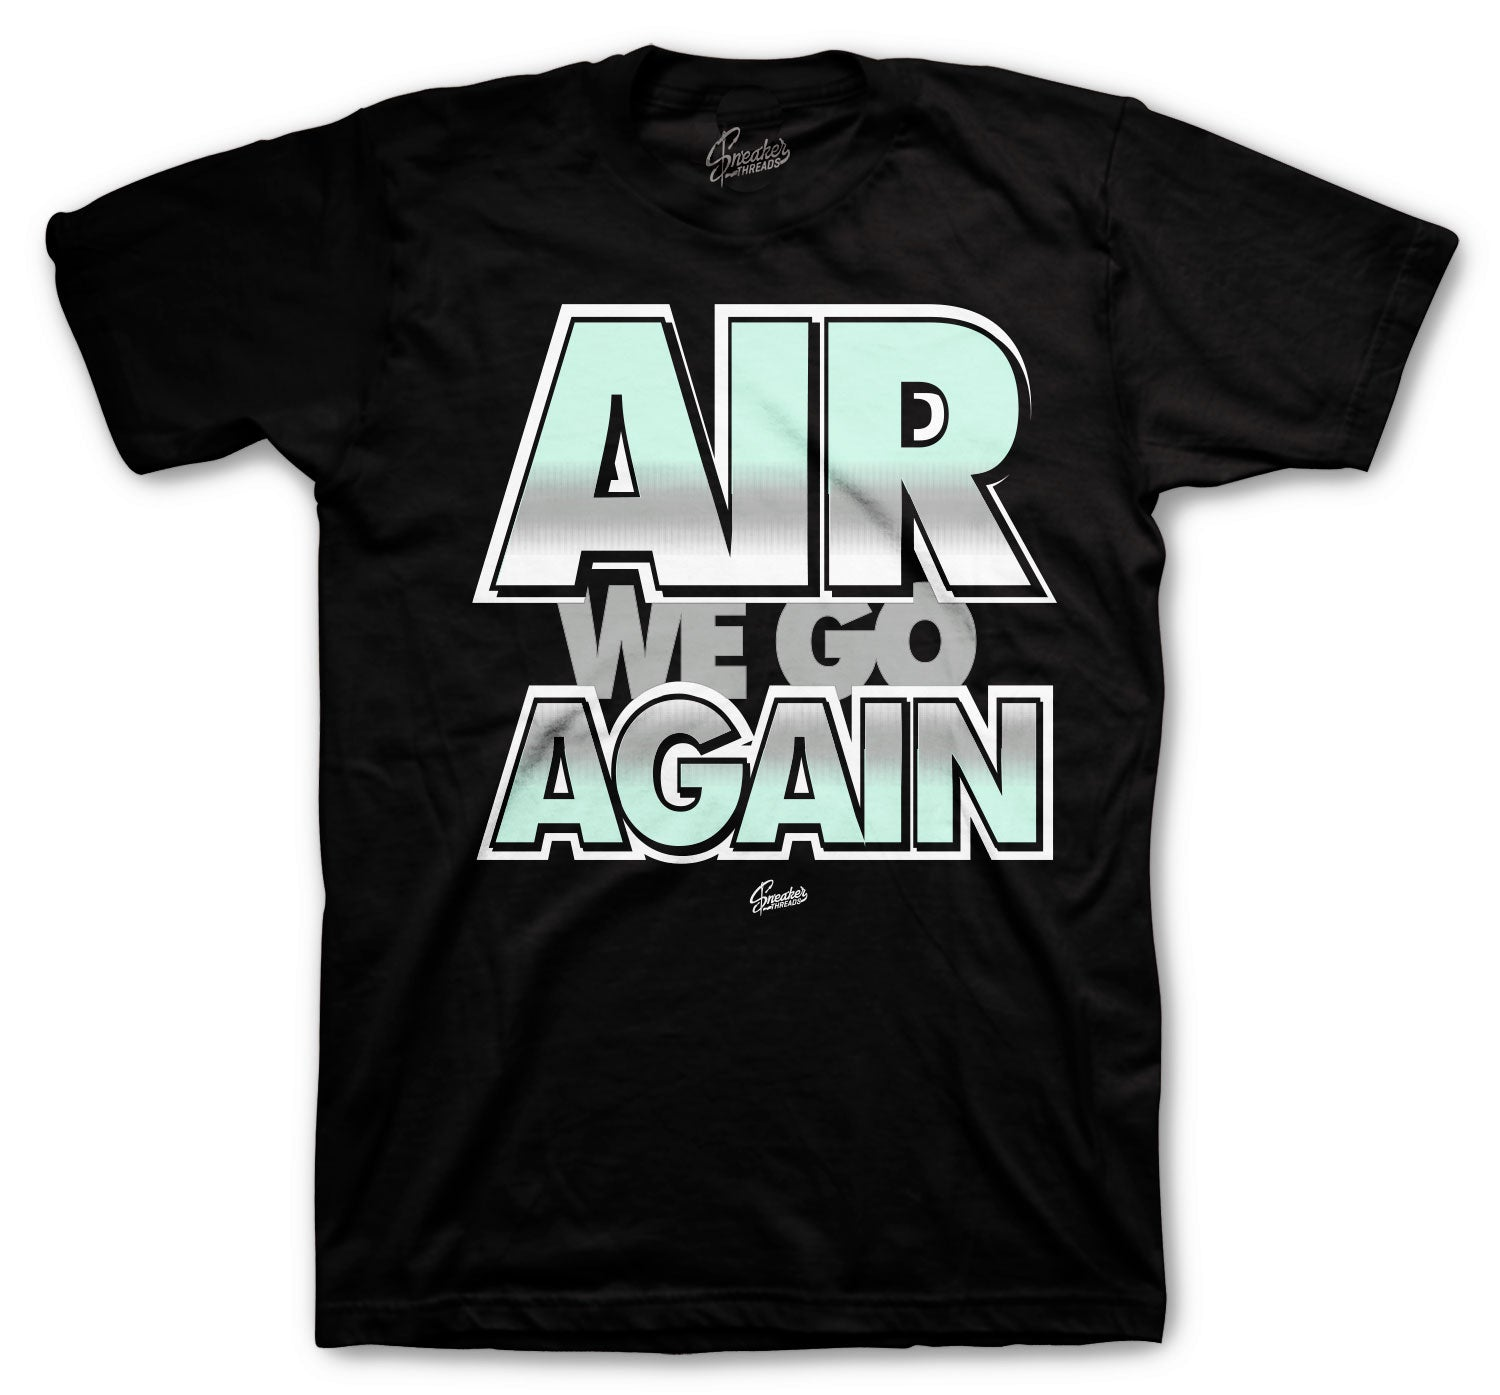 Barely Green All Star Shirt - Air We go - Black